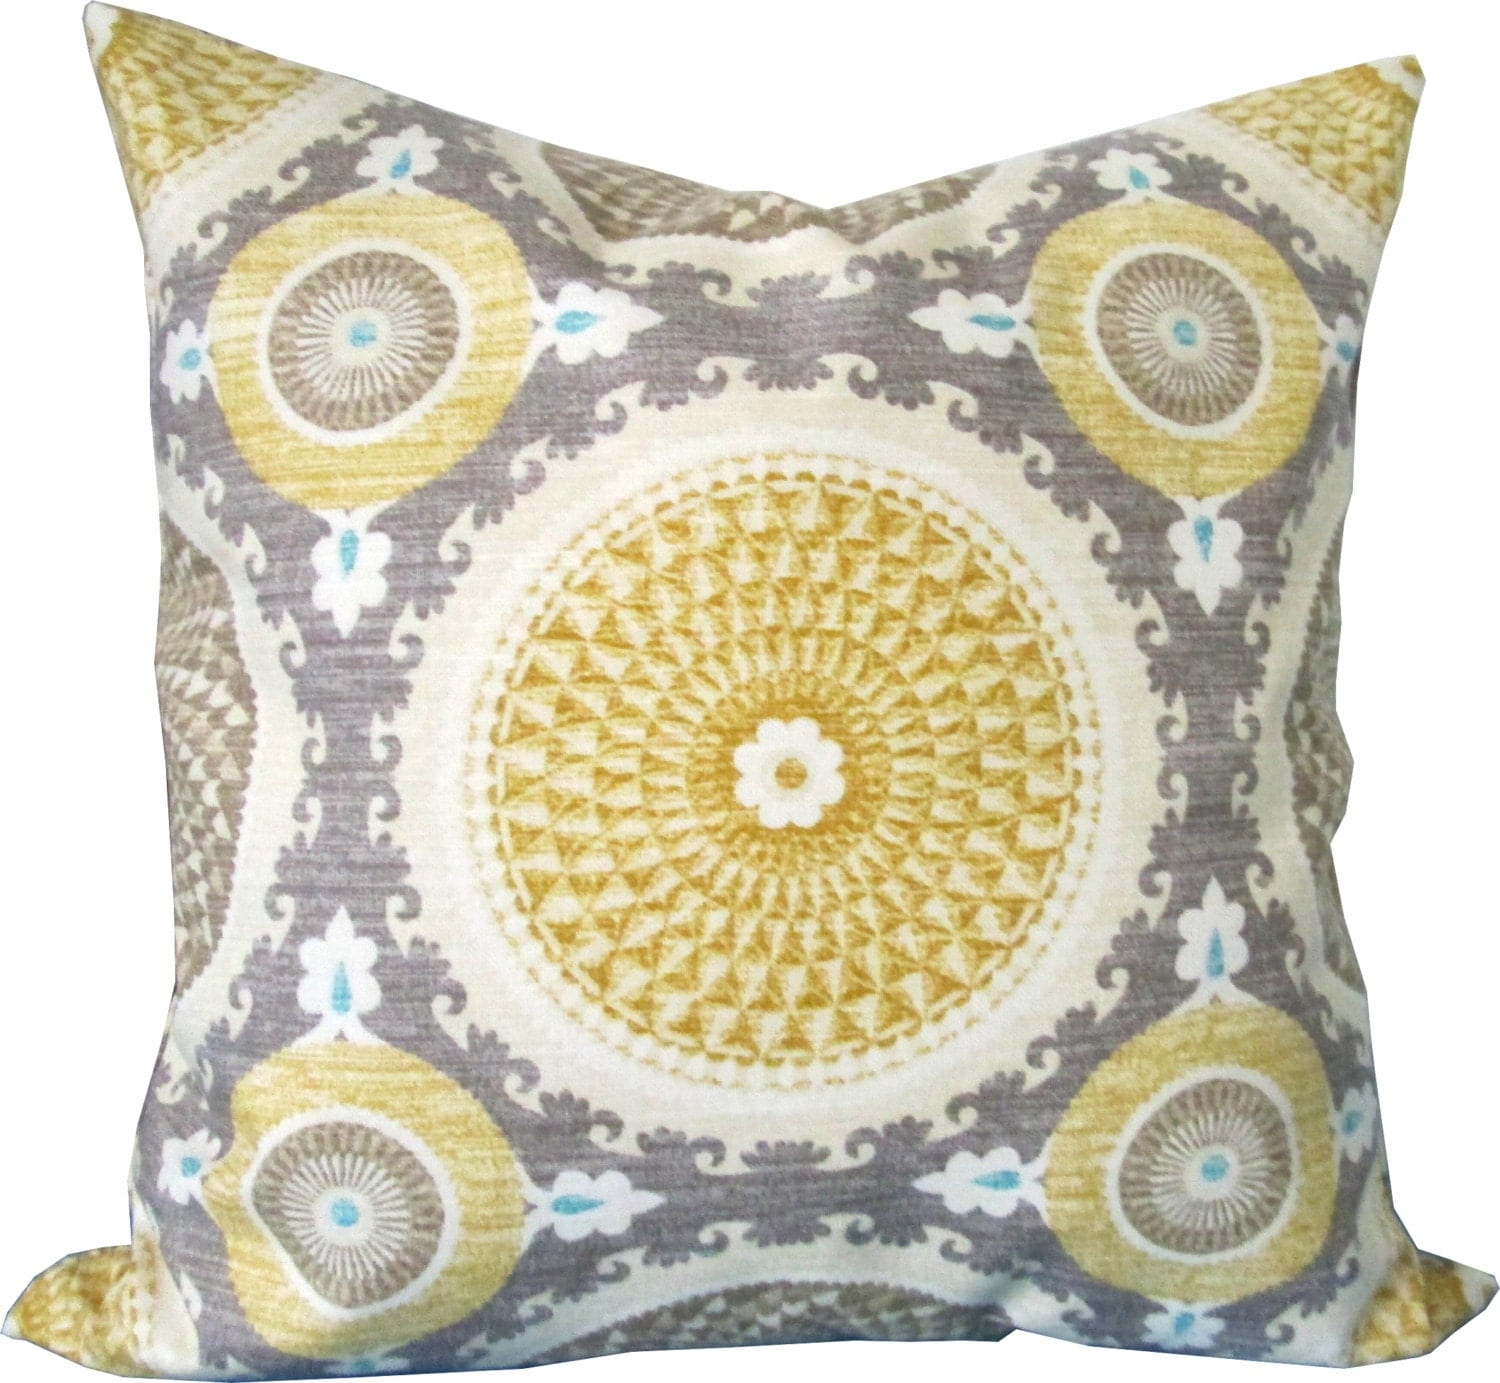 Throw Pillows Groupon : Yellow and Gray Suzani Decorative Pillow